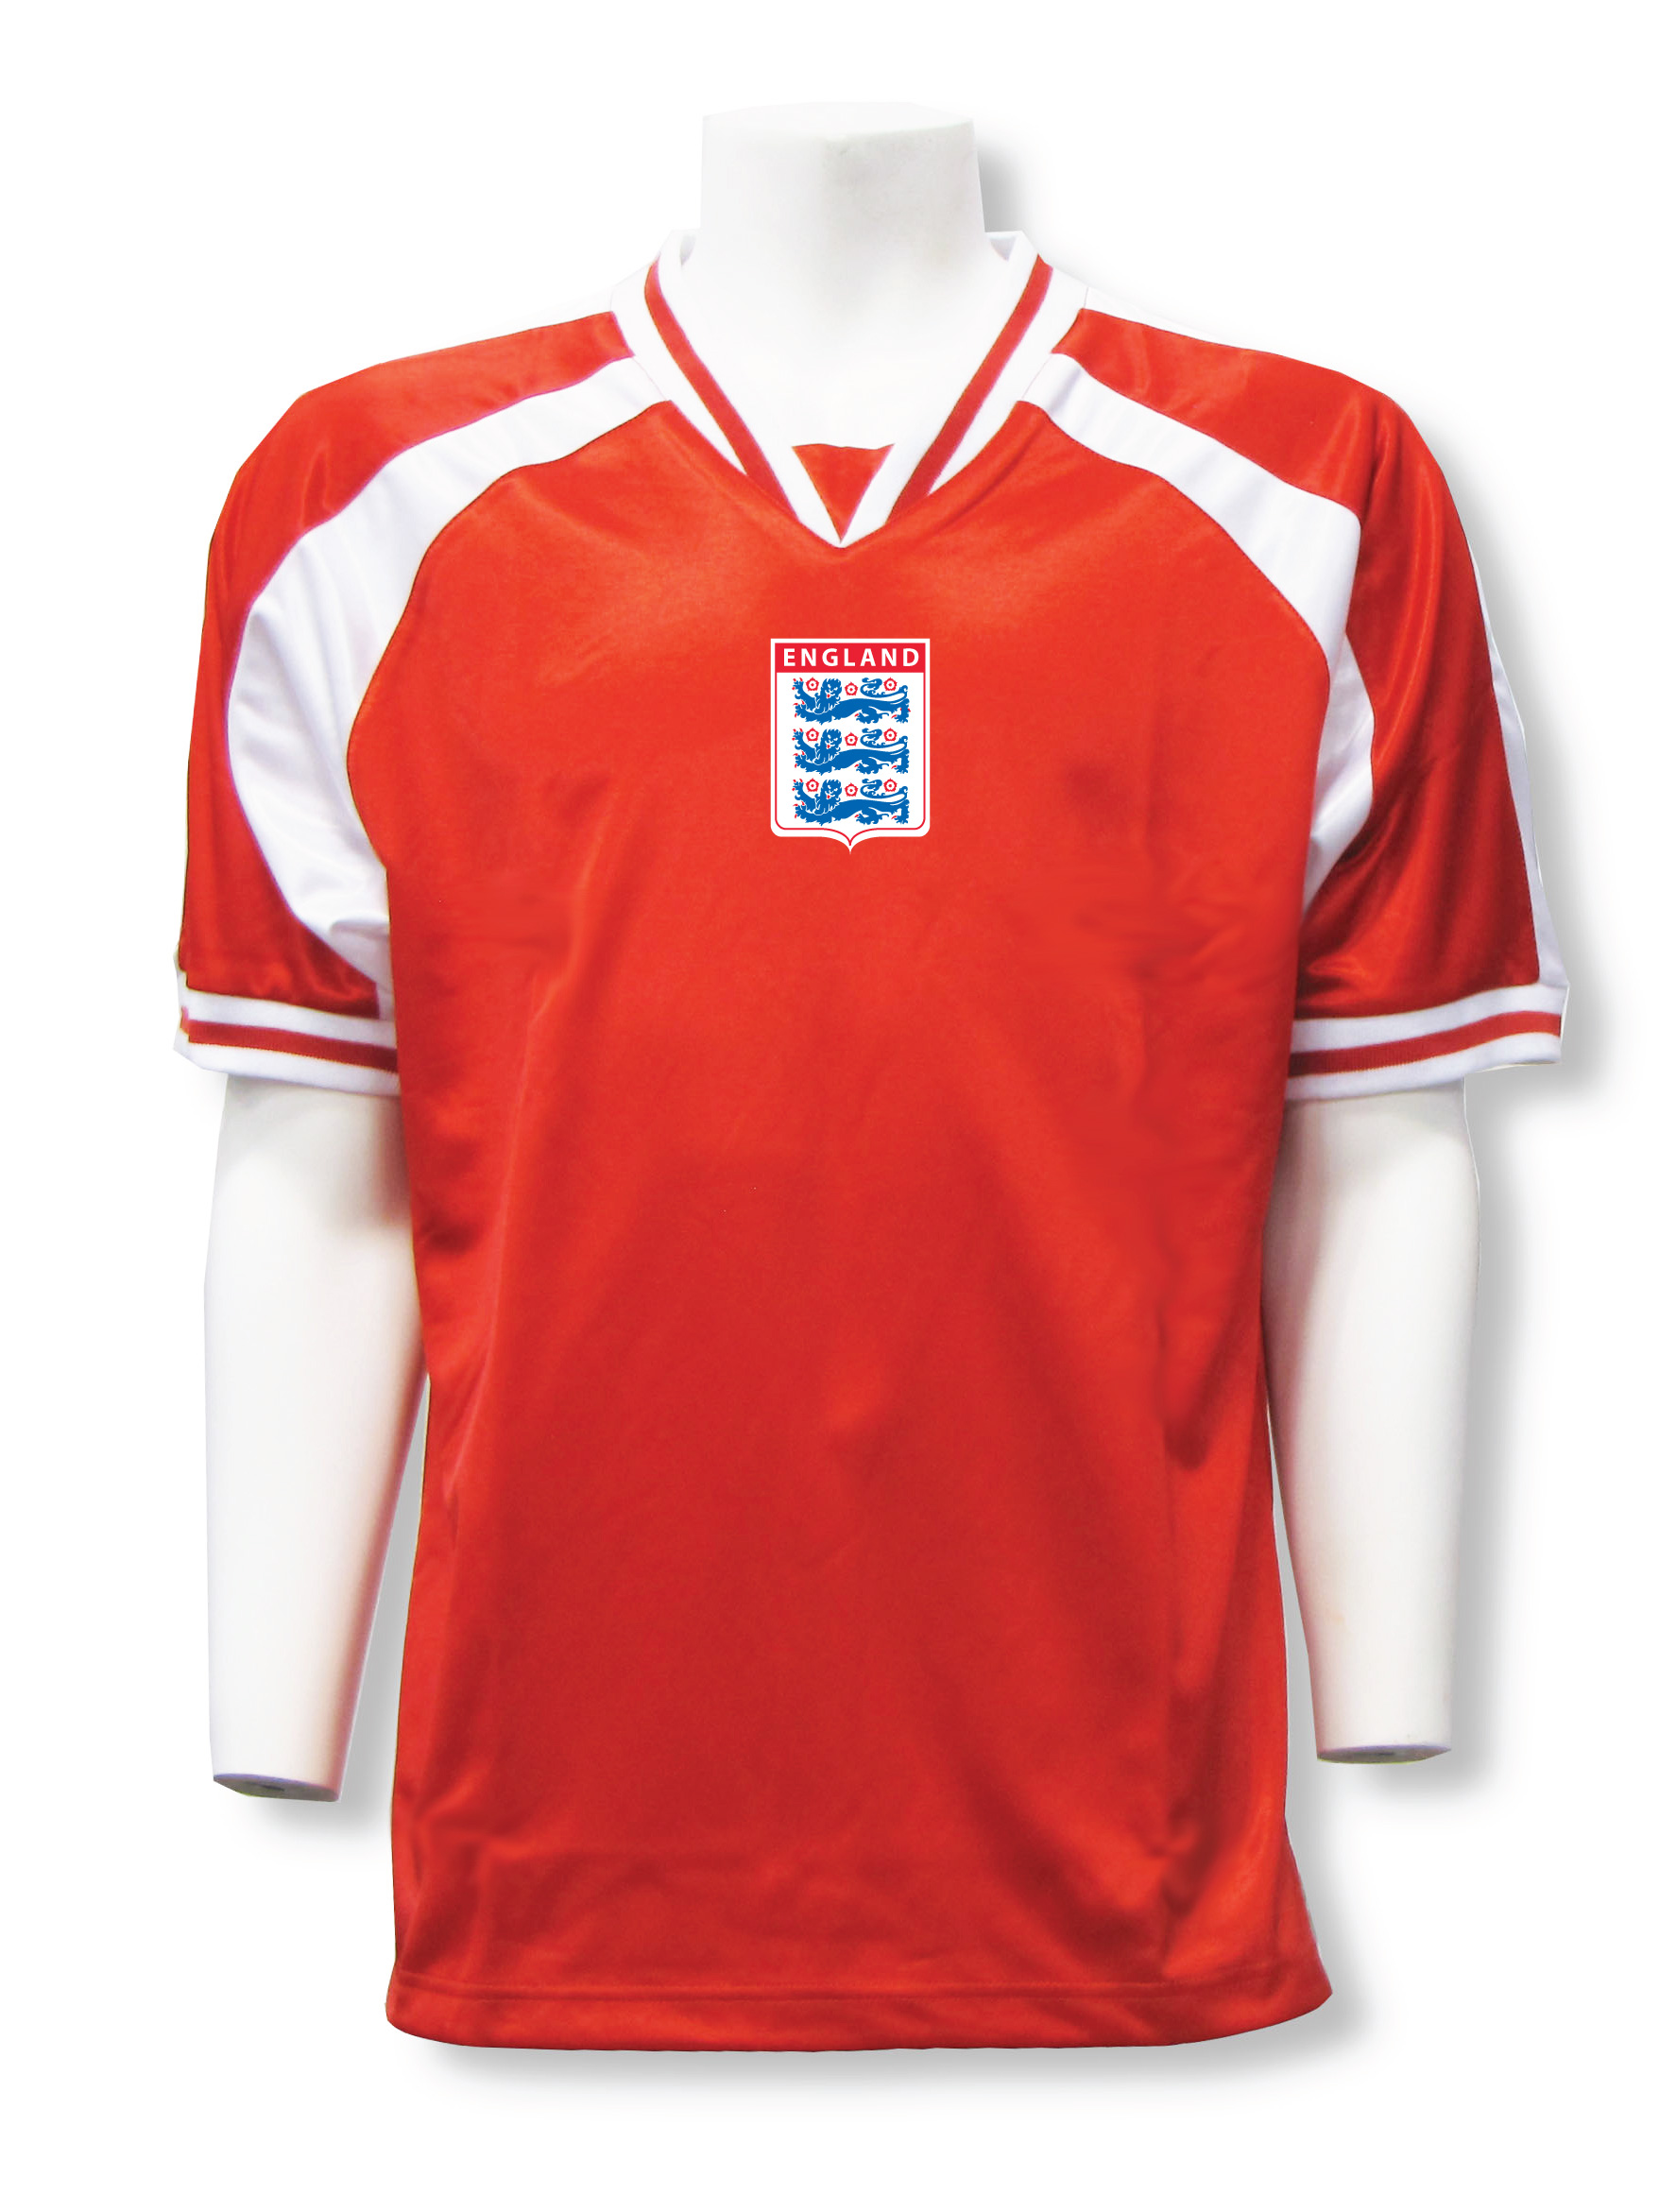 England soccer jersey in red/white Spitfire